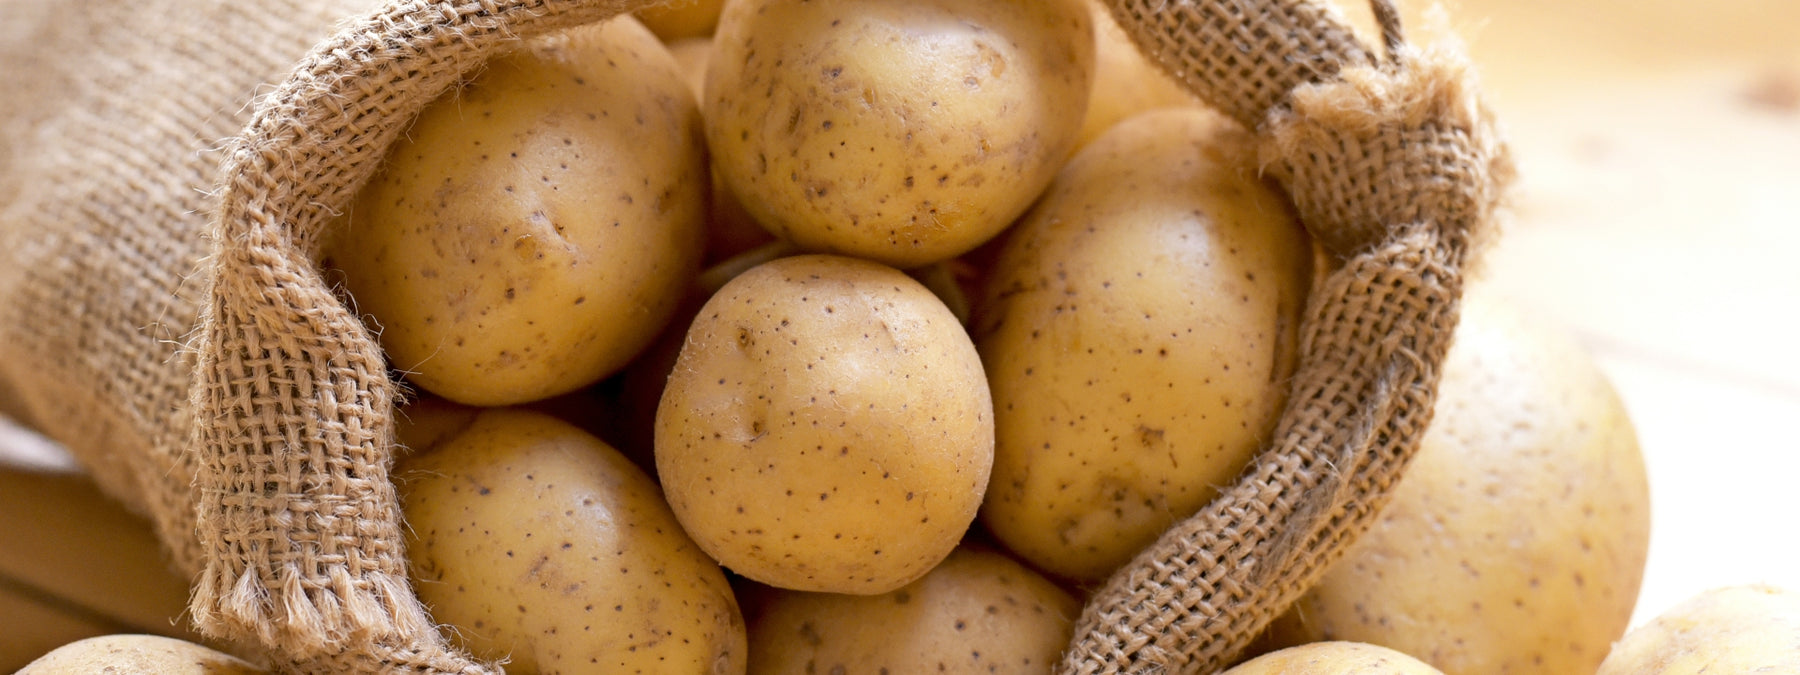 Can You Really Lose Weight Eating Potatoes?